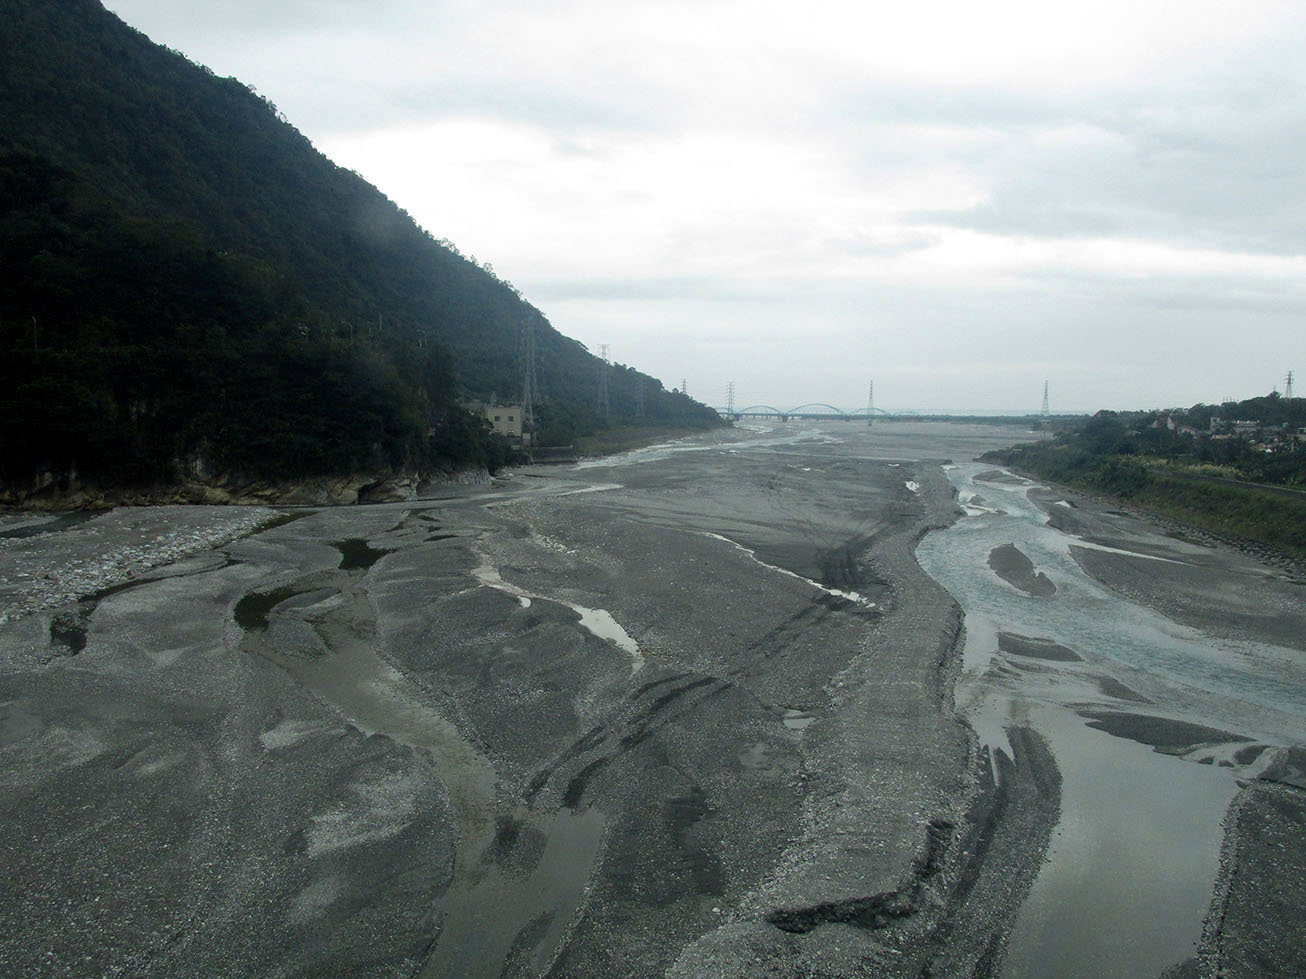 River flowing to the sea near Hualien